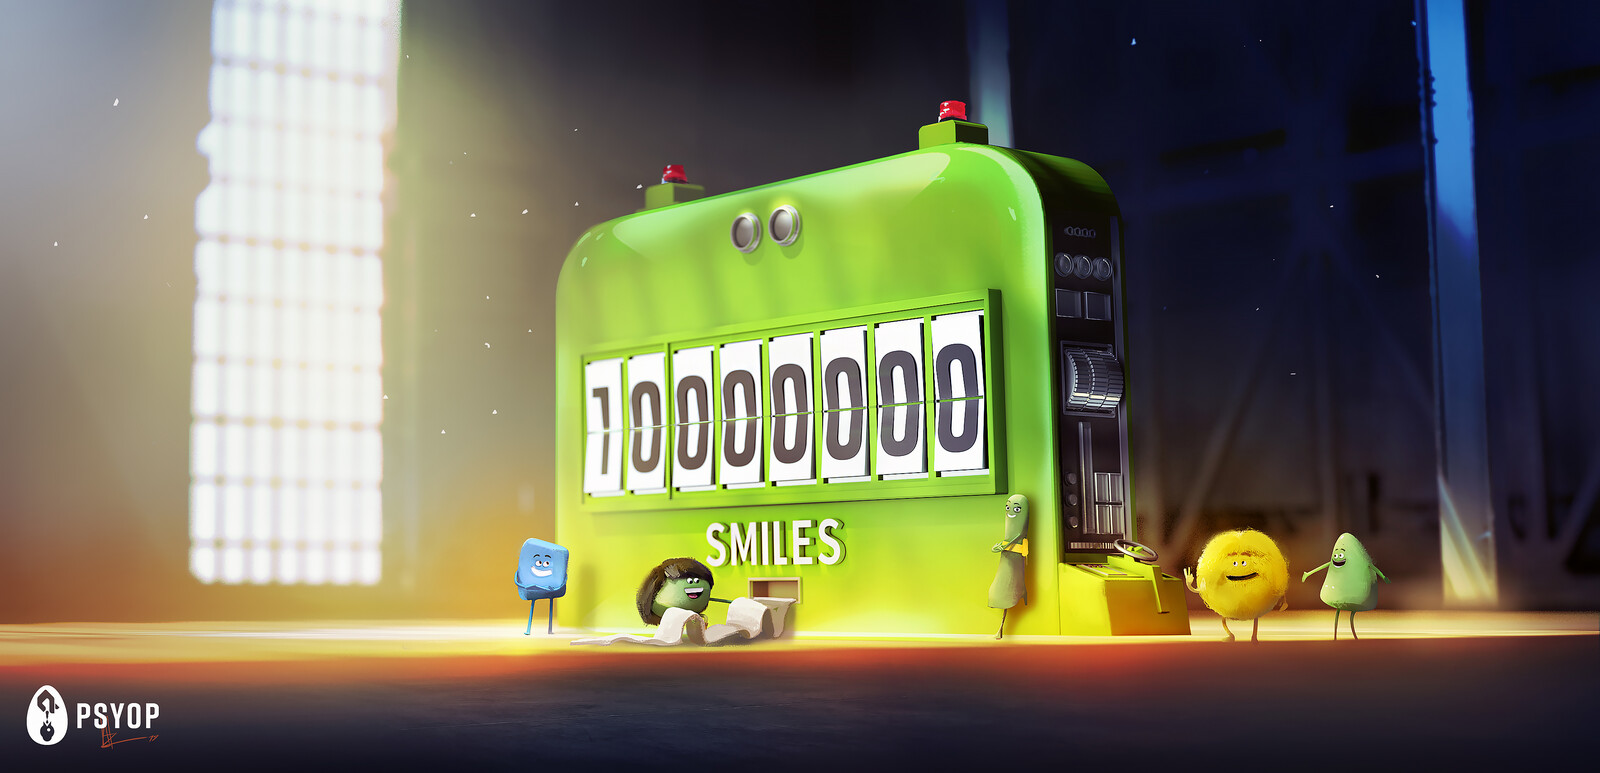 CRICKET WIRELESS 10M Smiles AD / Concept Art